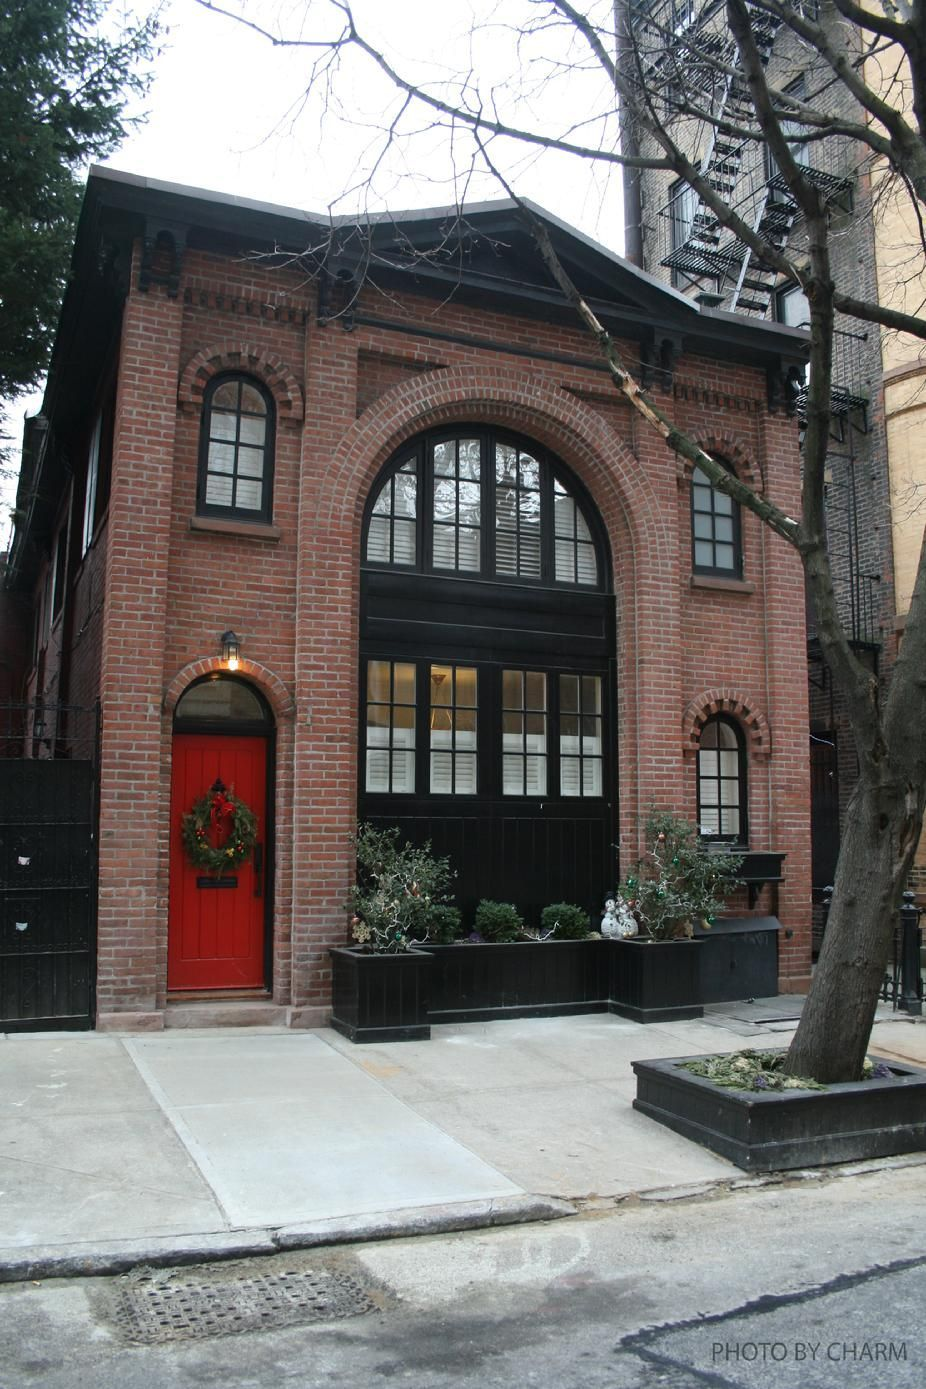 25 Exceptional Carriage House Conversions is part of architecture House Videos Model - Cylburn's design is often called Italianate but presents Second Empire features like the mansard roof  Even without a History background